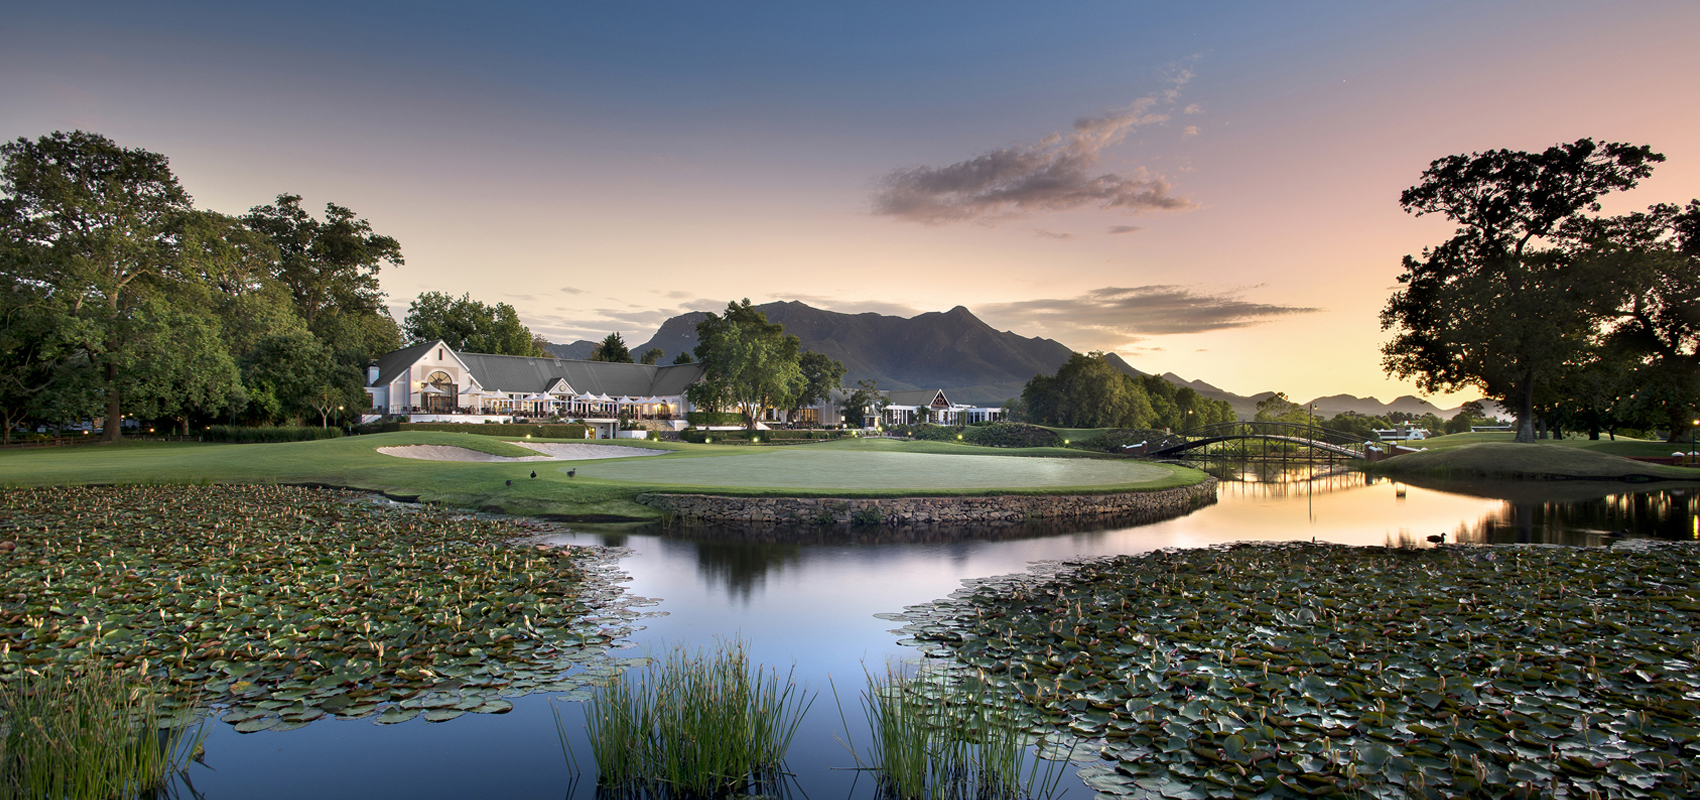 Fancourt_tining_dates_refurbs